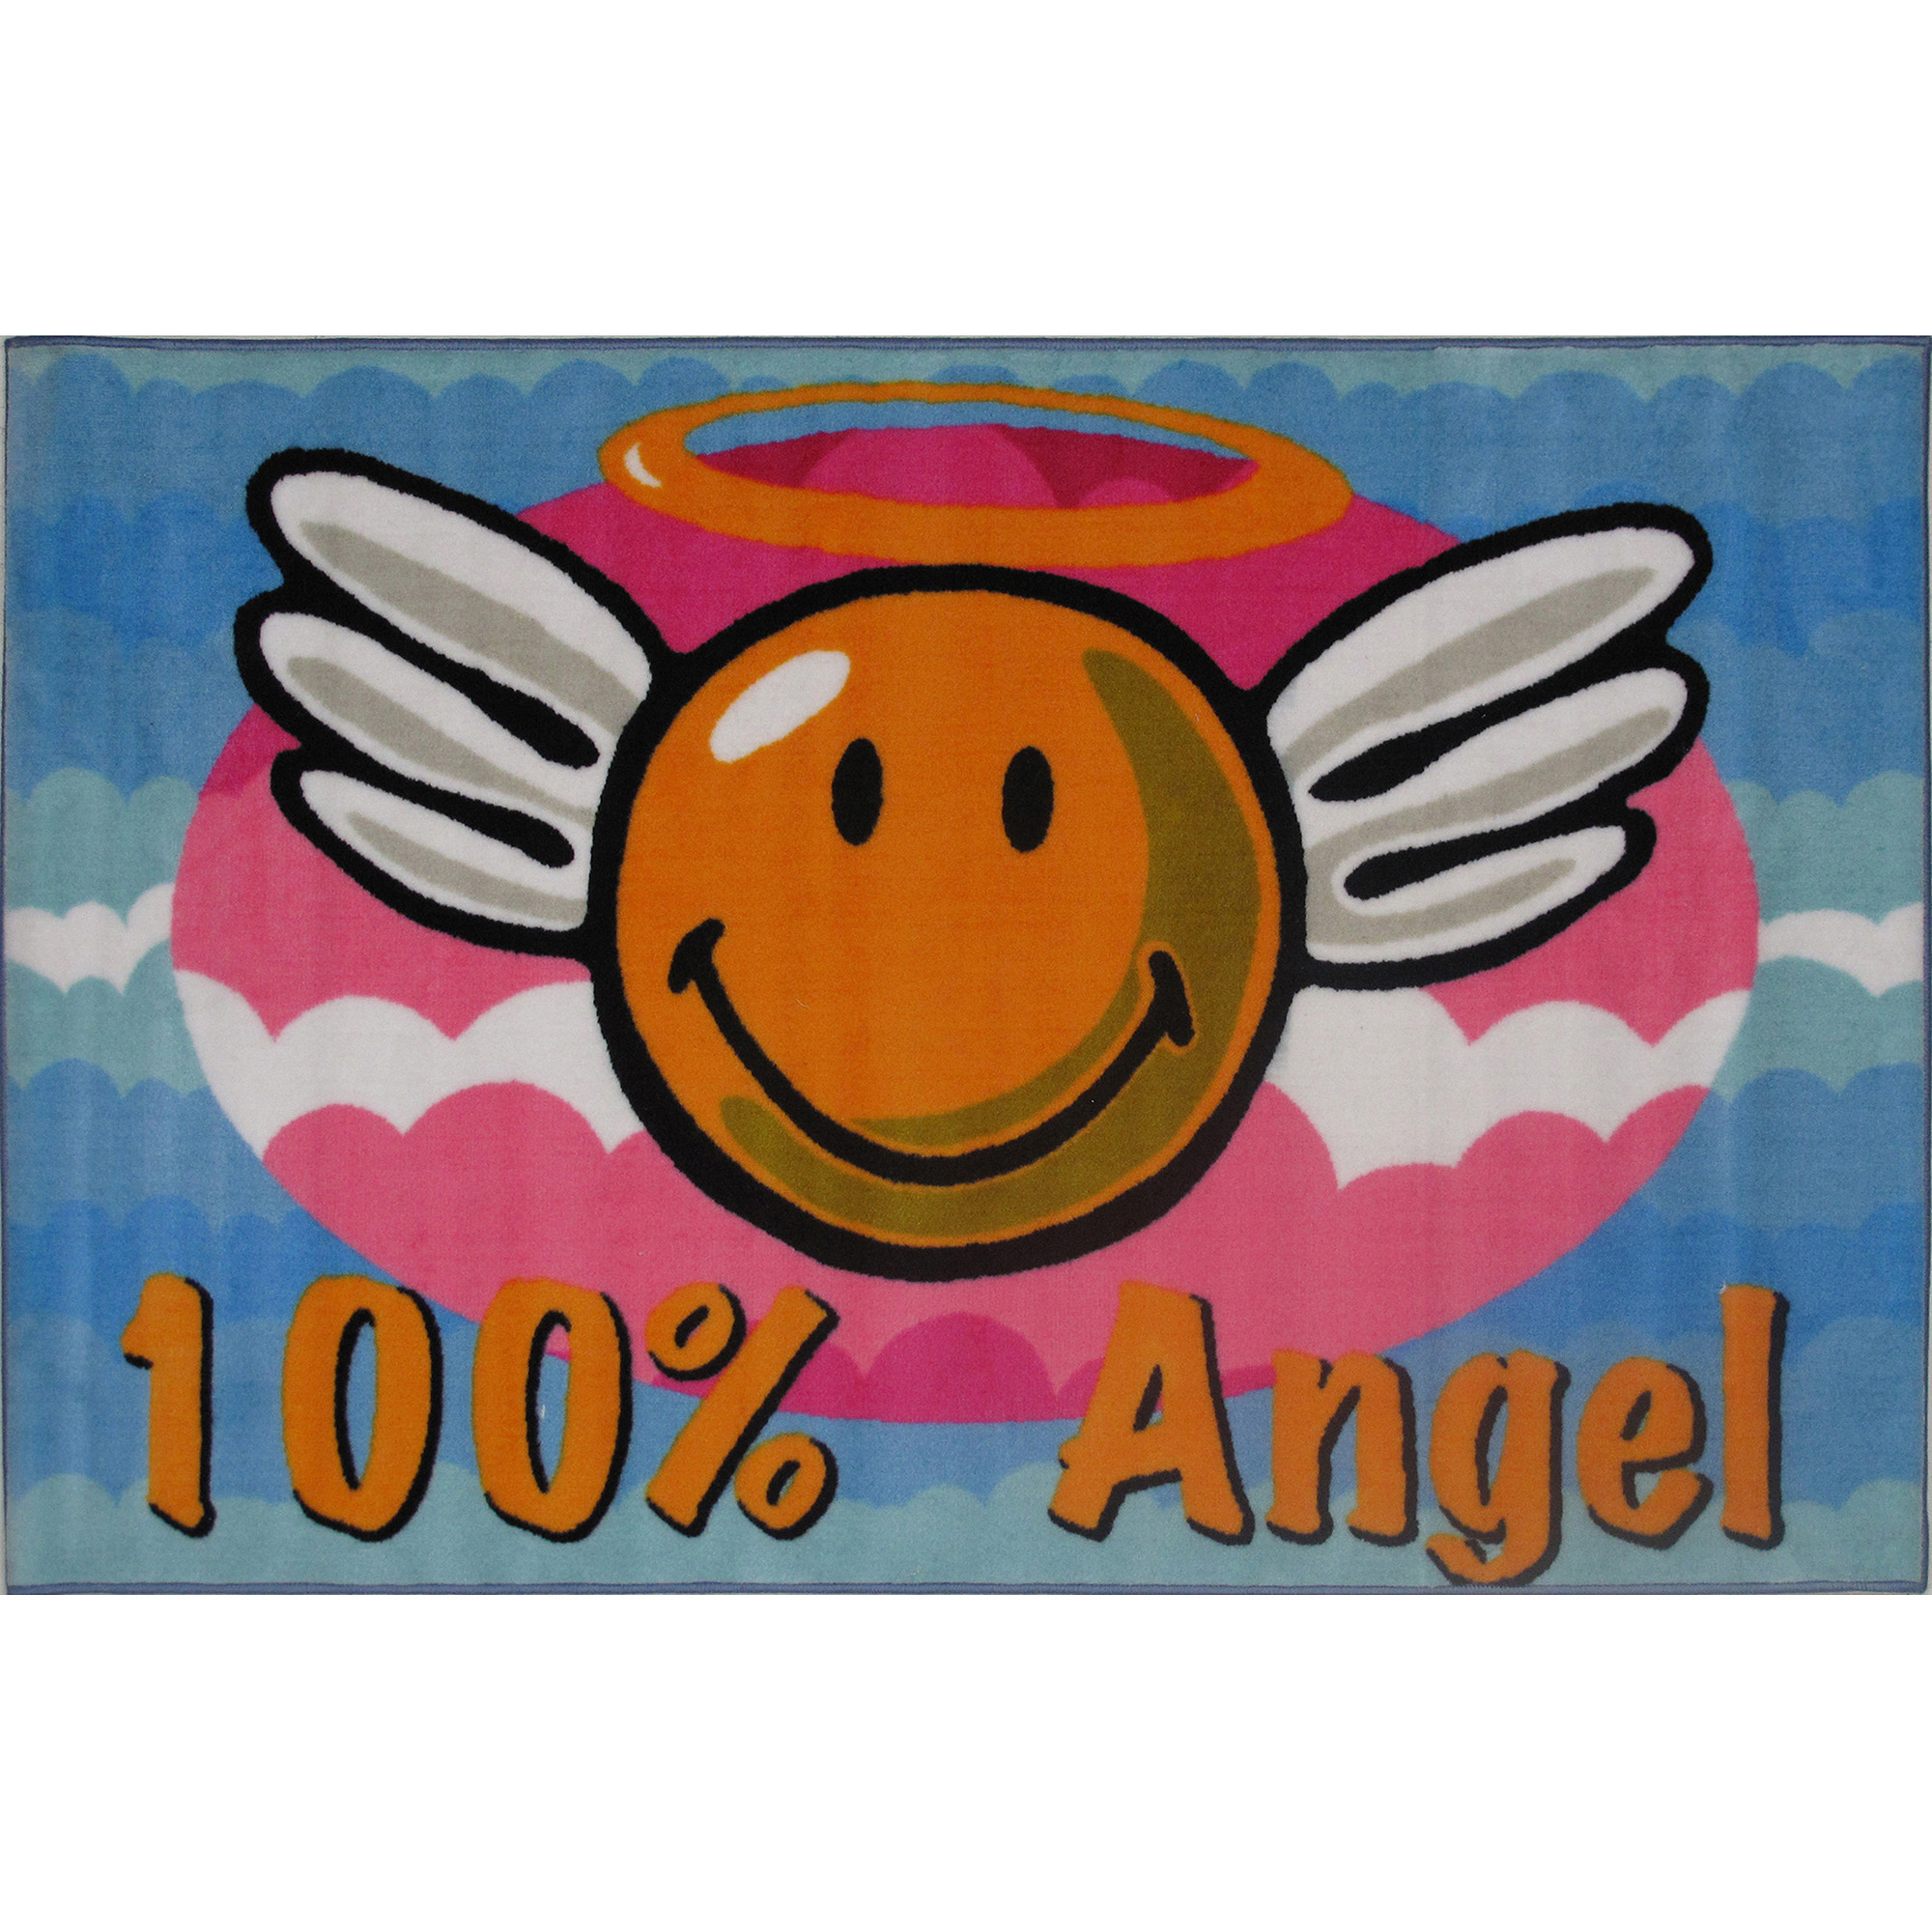 "Fun Rugs Smiley Angel 19"" x 29"" Rug"